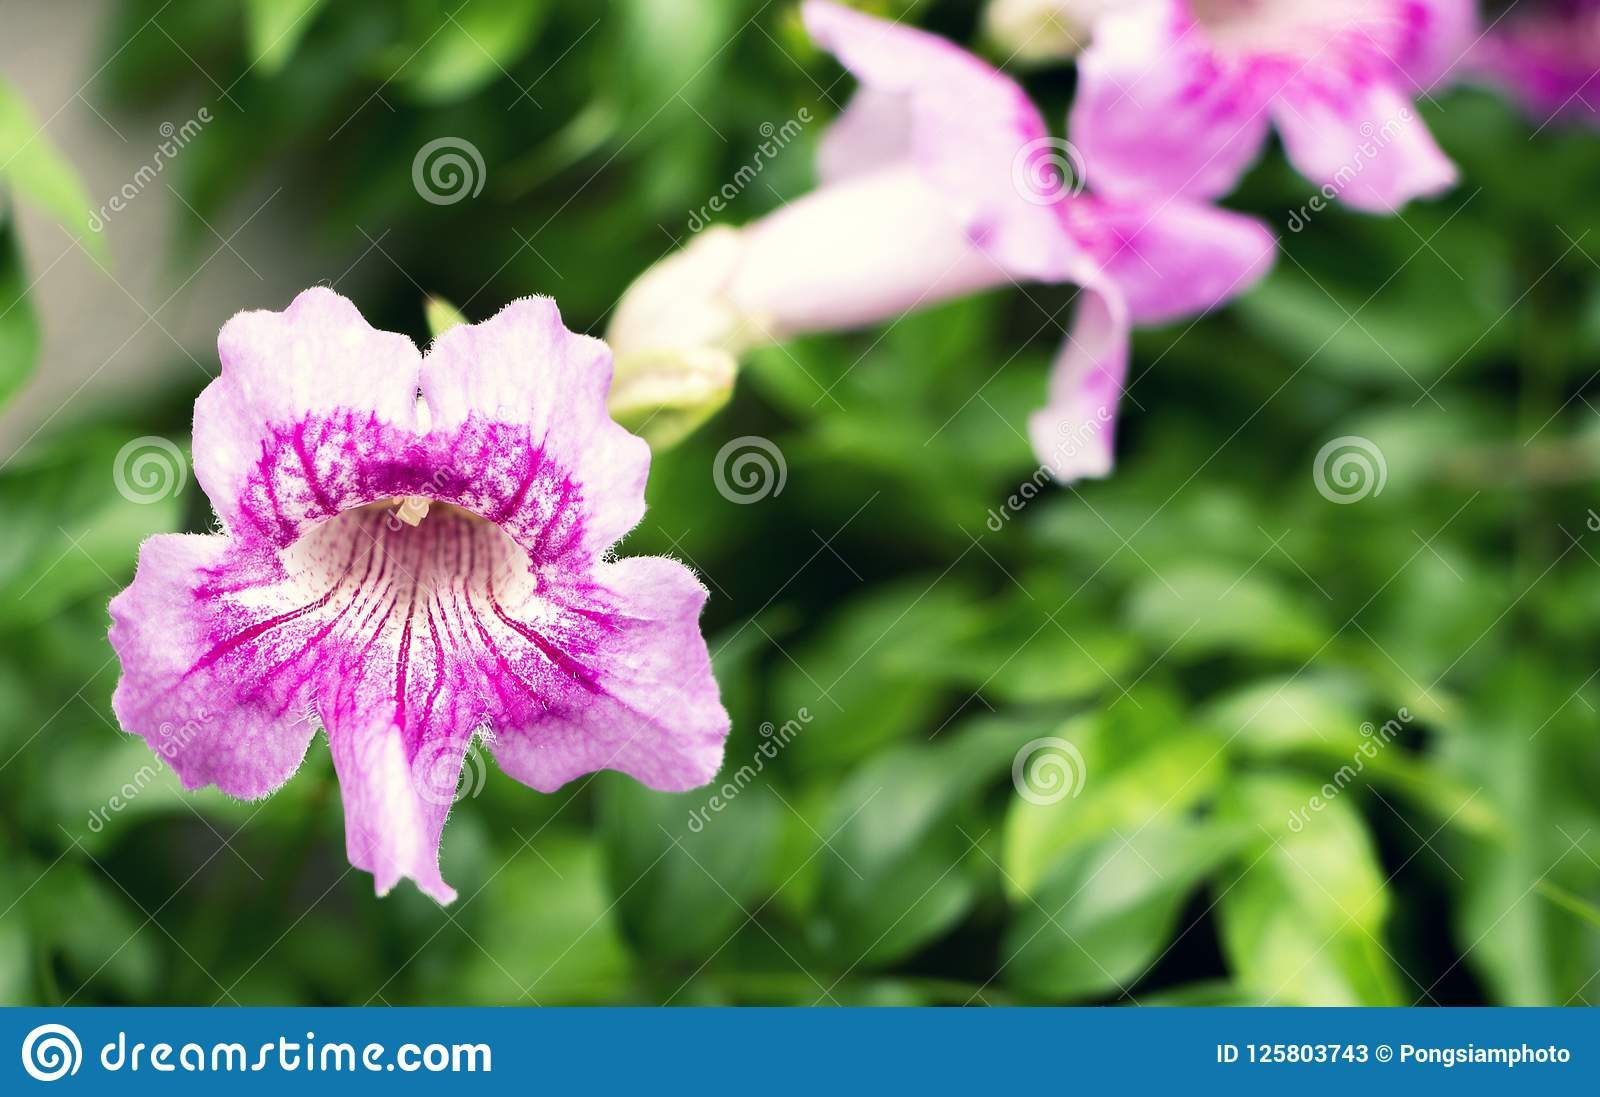 Beautiful Pink Flowers And Green Leaves In The Garden Stock Image